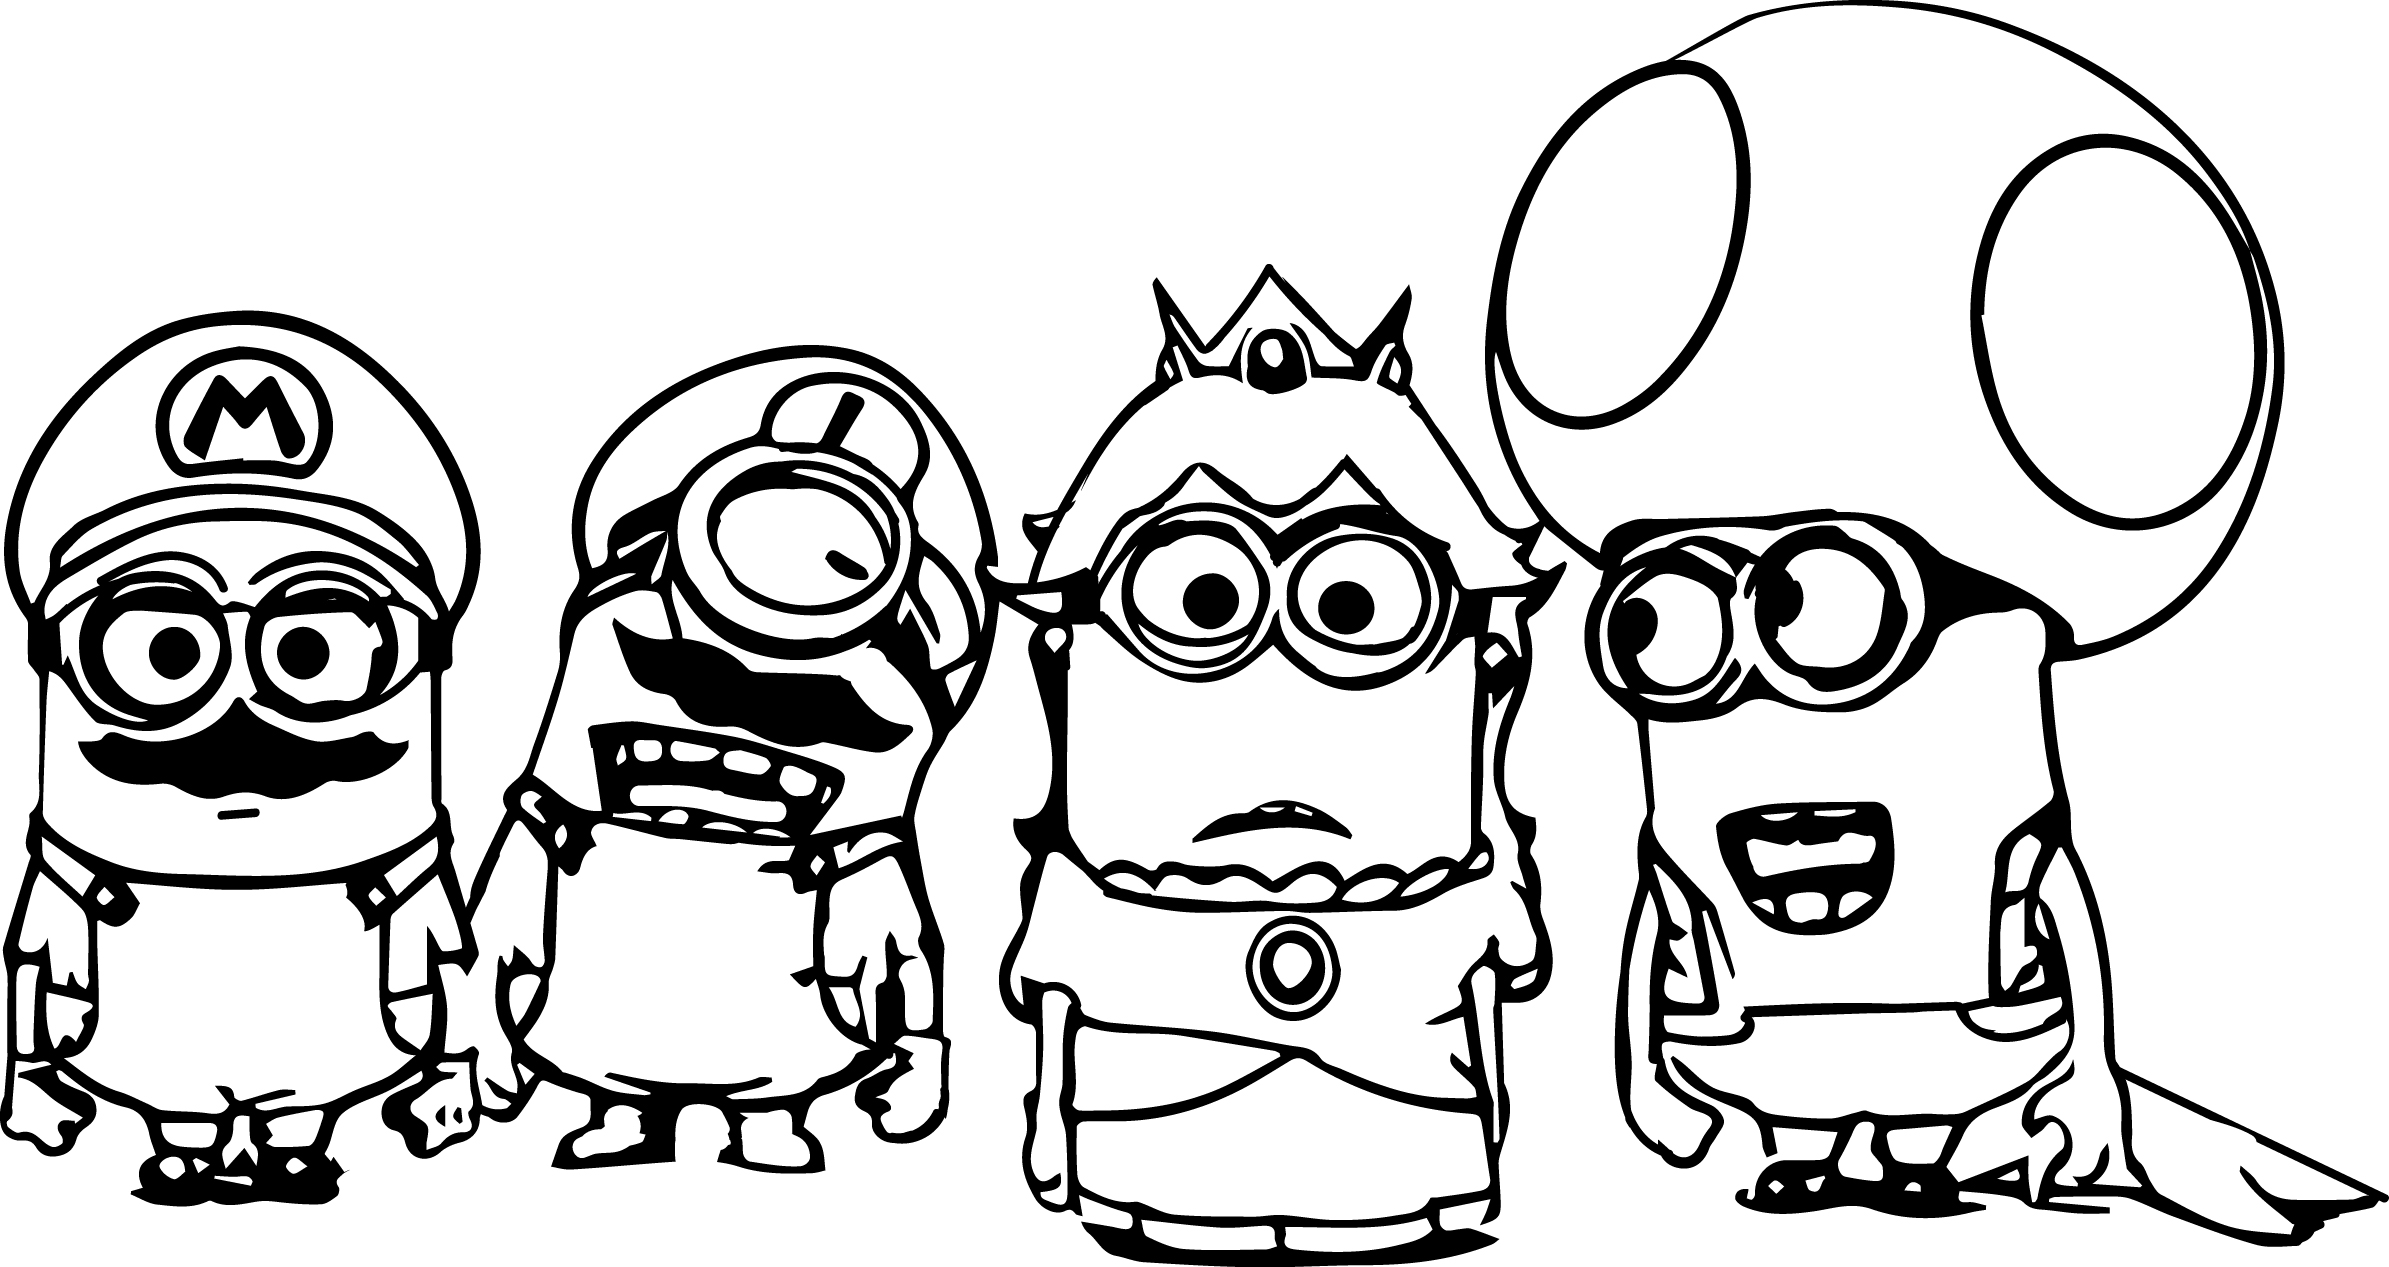 Minion Coloring Pages Best Coloring Pages For Kids Coloring Page